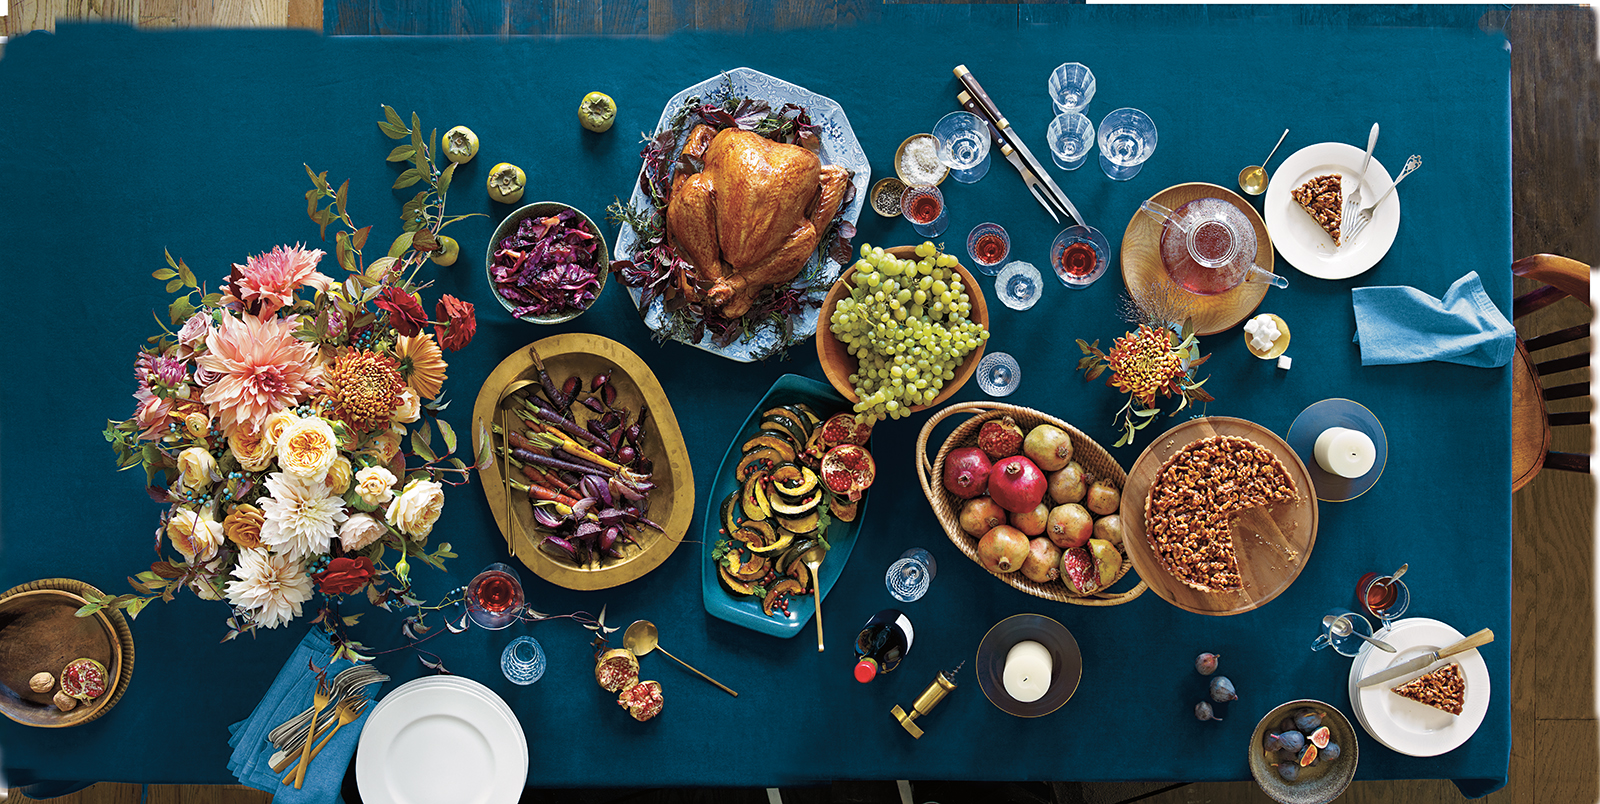 Turkey and sides on blue table